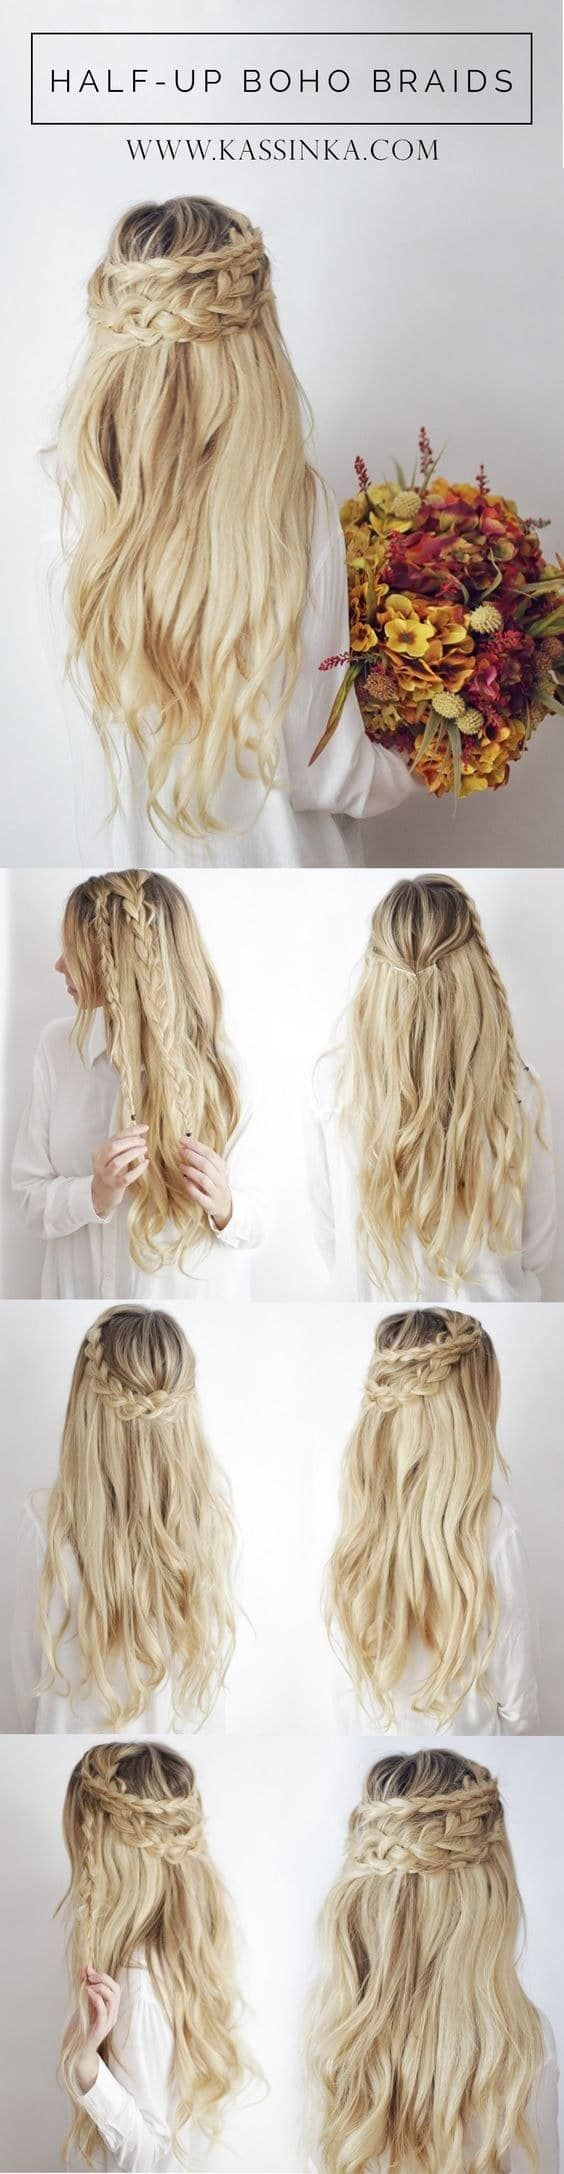 17 Stunning Braided Hairstyles So Easy You Can Actually Do Them Yourself Hair Styles Long Hair Styles Hair Tutorial